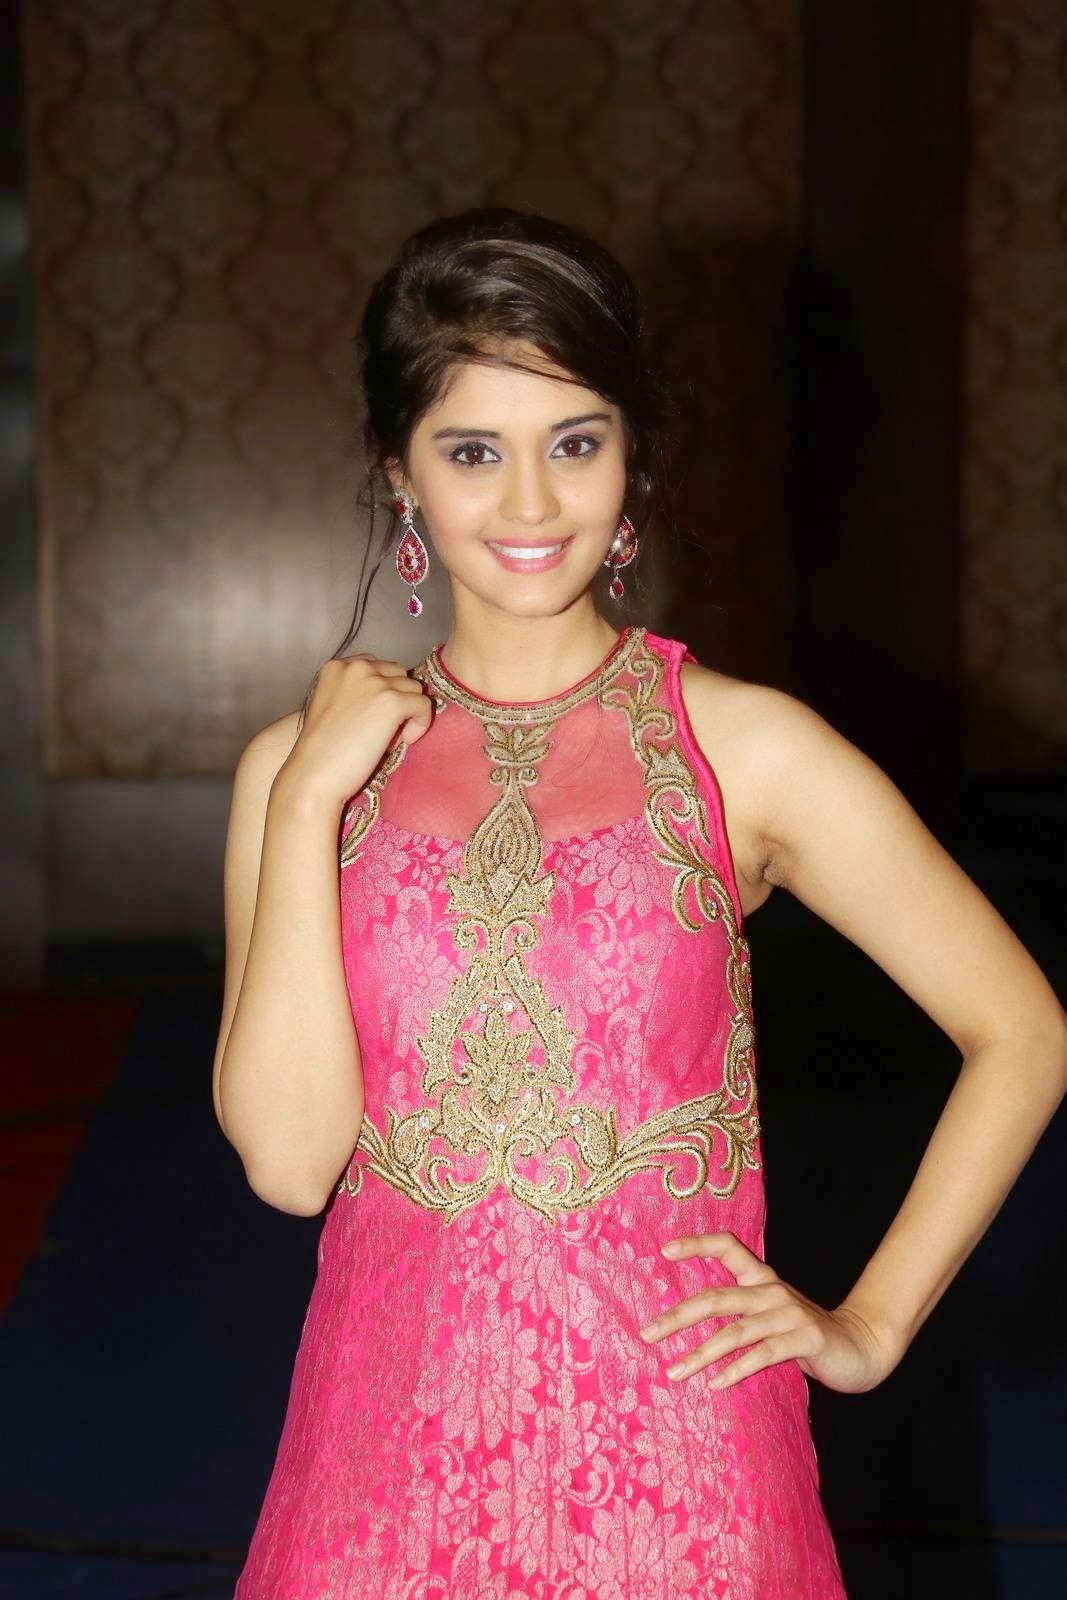 Beeruva Telugu  Movie Actress Surabhi cute Photo stills,S, Surabhi, Surabhi Hot Images, Telugu Movie Actress, Tollywood Actress, HD Actress Gallery, latest Actress HD Photo Gallery, Latest actress Stills, Beautiful pics, Indian Actress, Actress HD Photo Gallery,